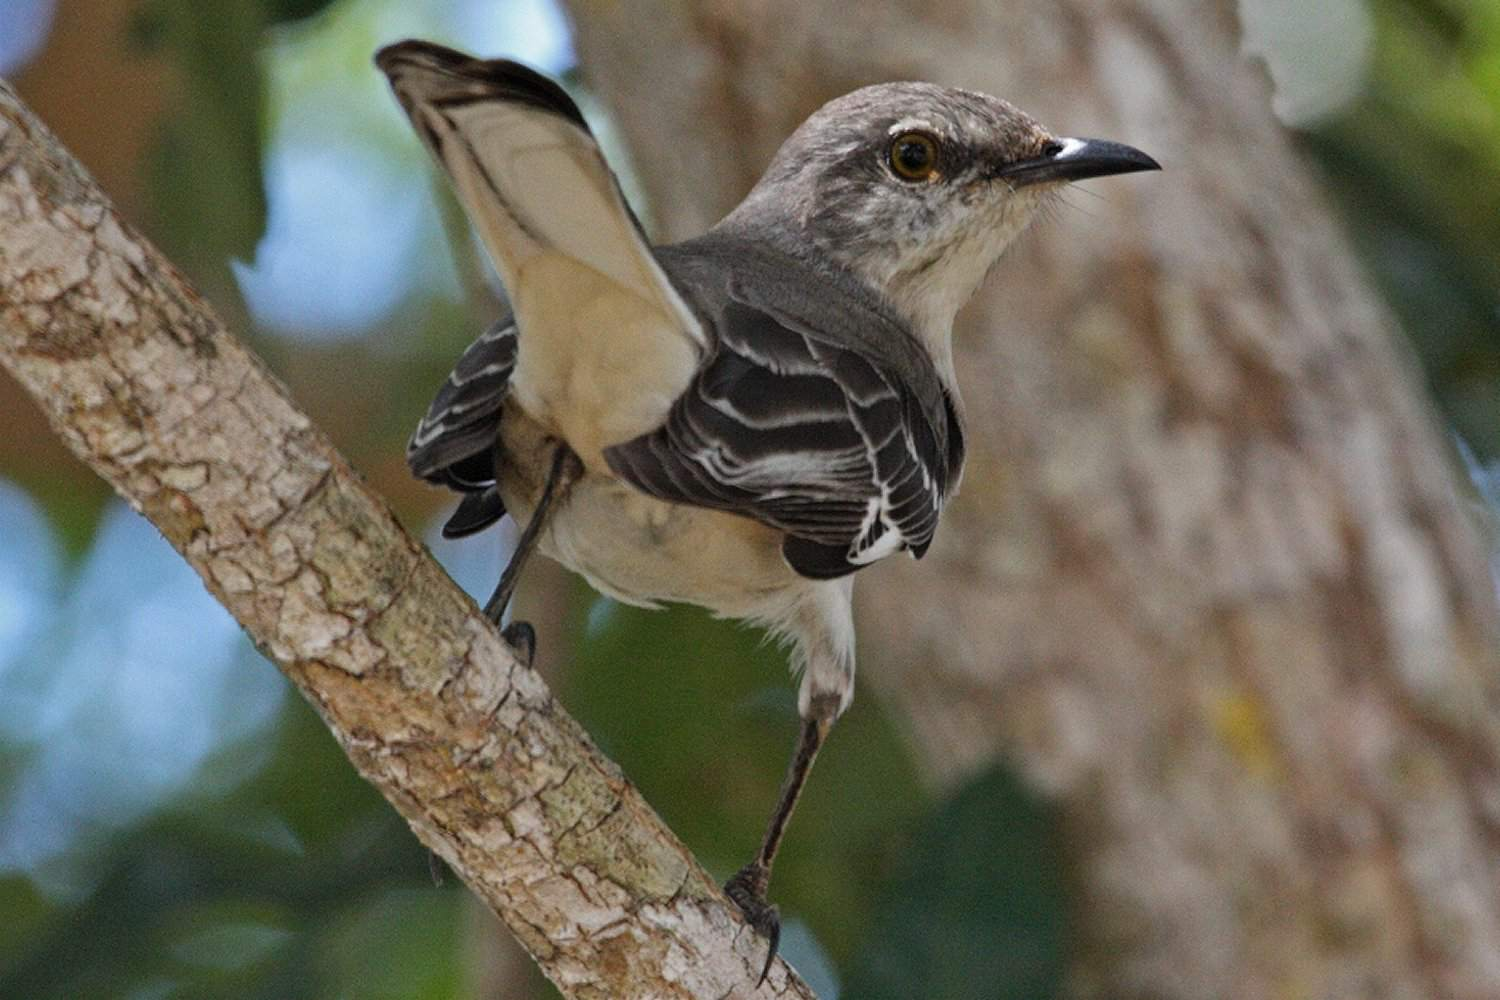 Northern Mockingbird, the state bird of Florida, facing away from the camera while on a tree branch.